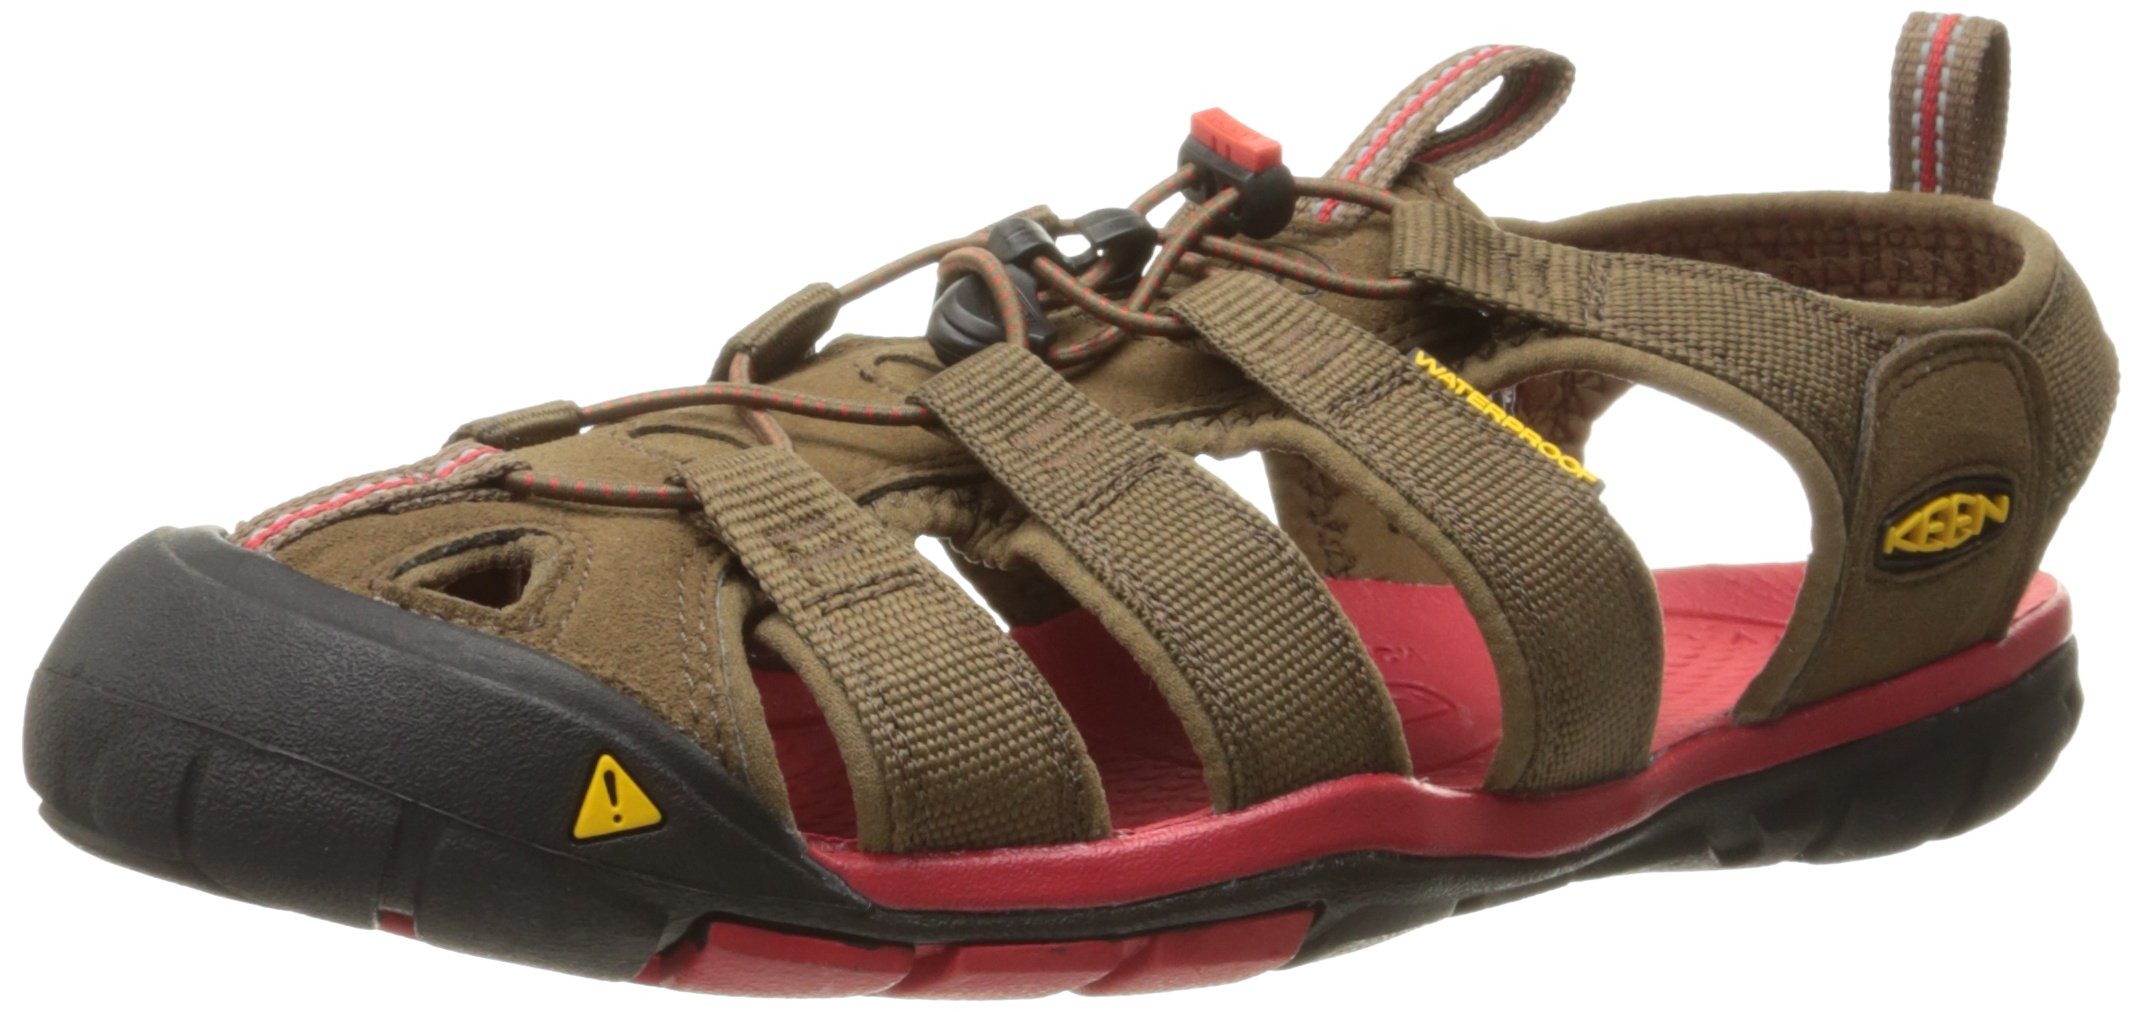 KEEN Men's Clearwater CNX Sandal, Dark Earth/Racing Red, 7 M US